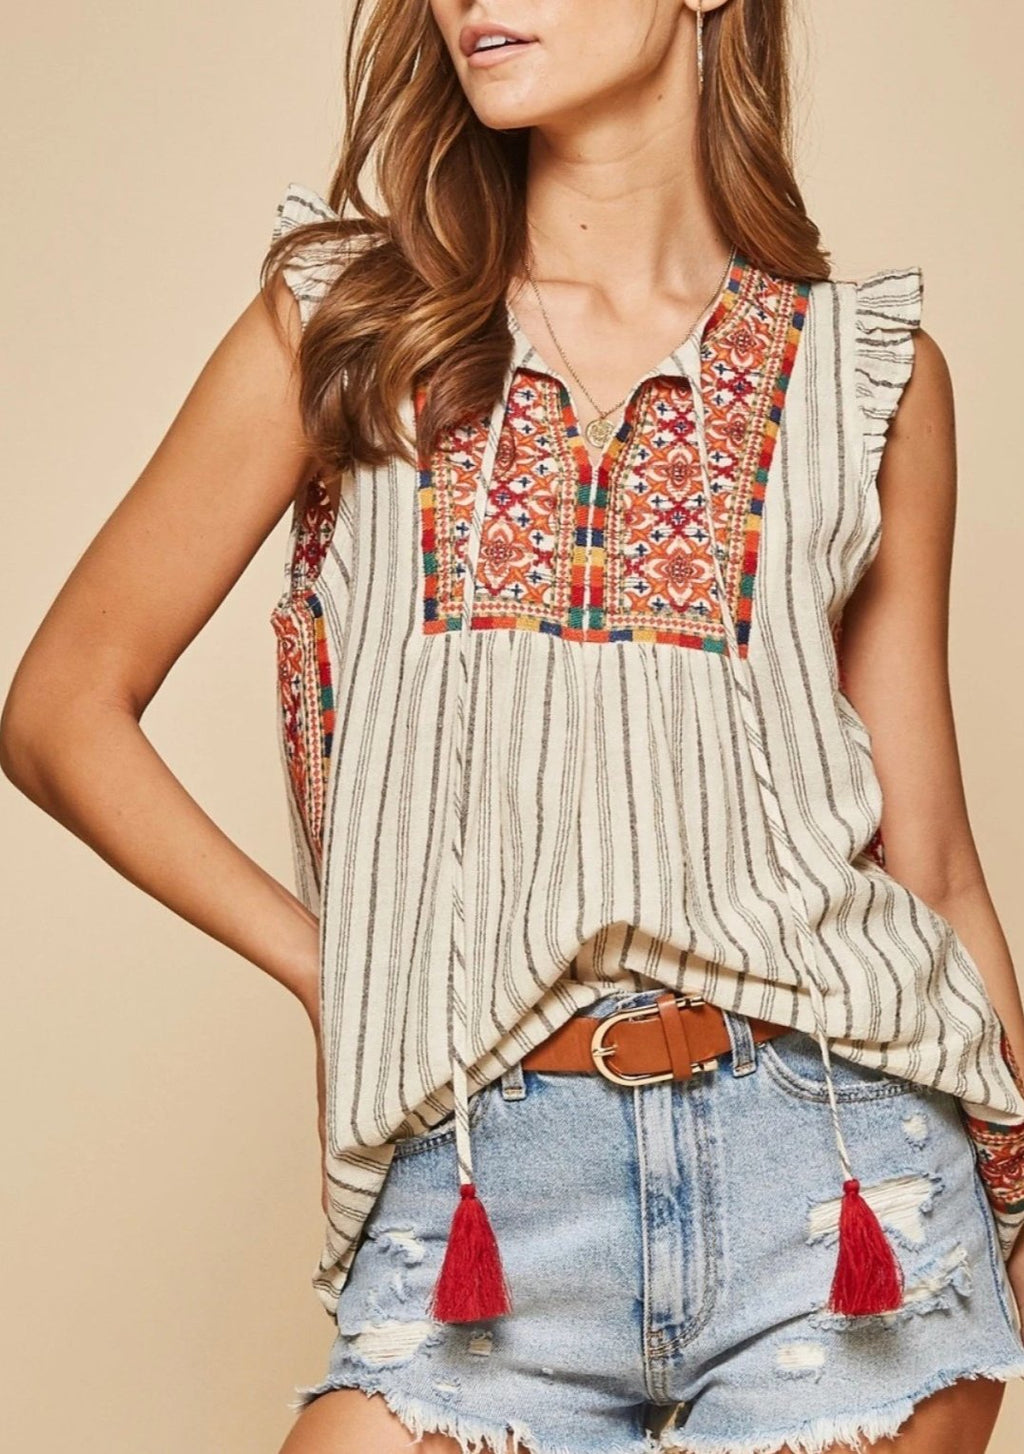 Savanna Jane Mosaic Embroidered Top